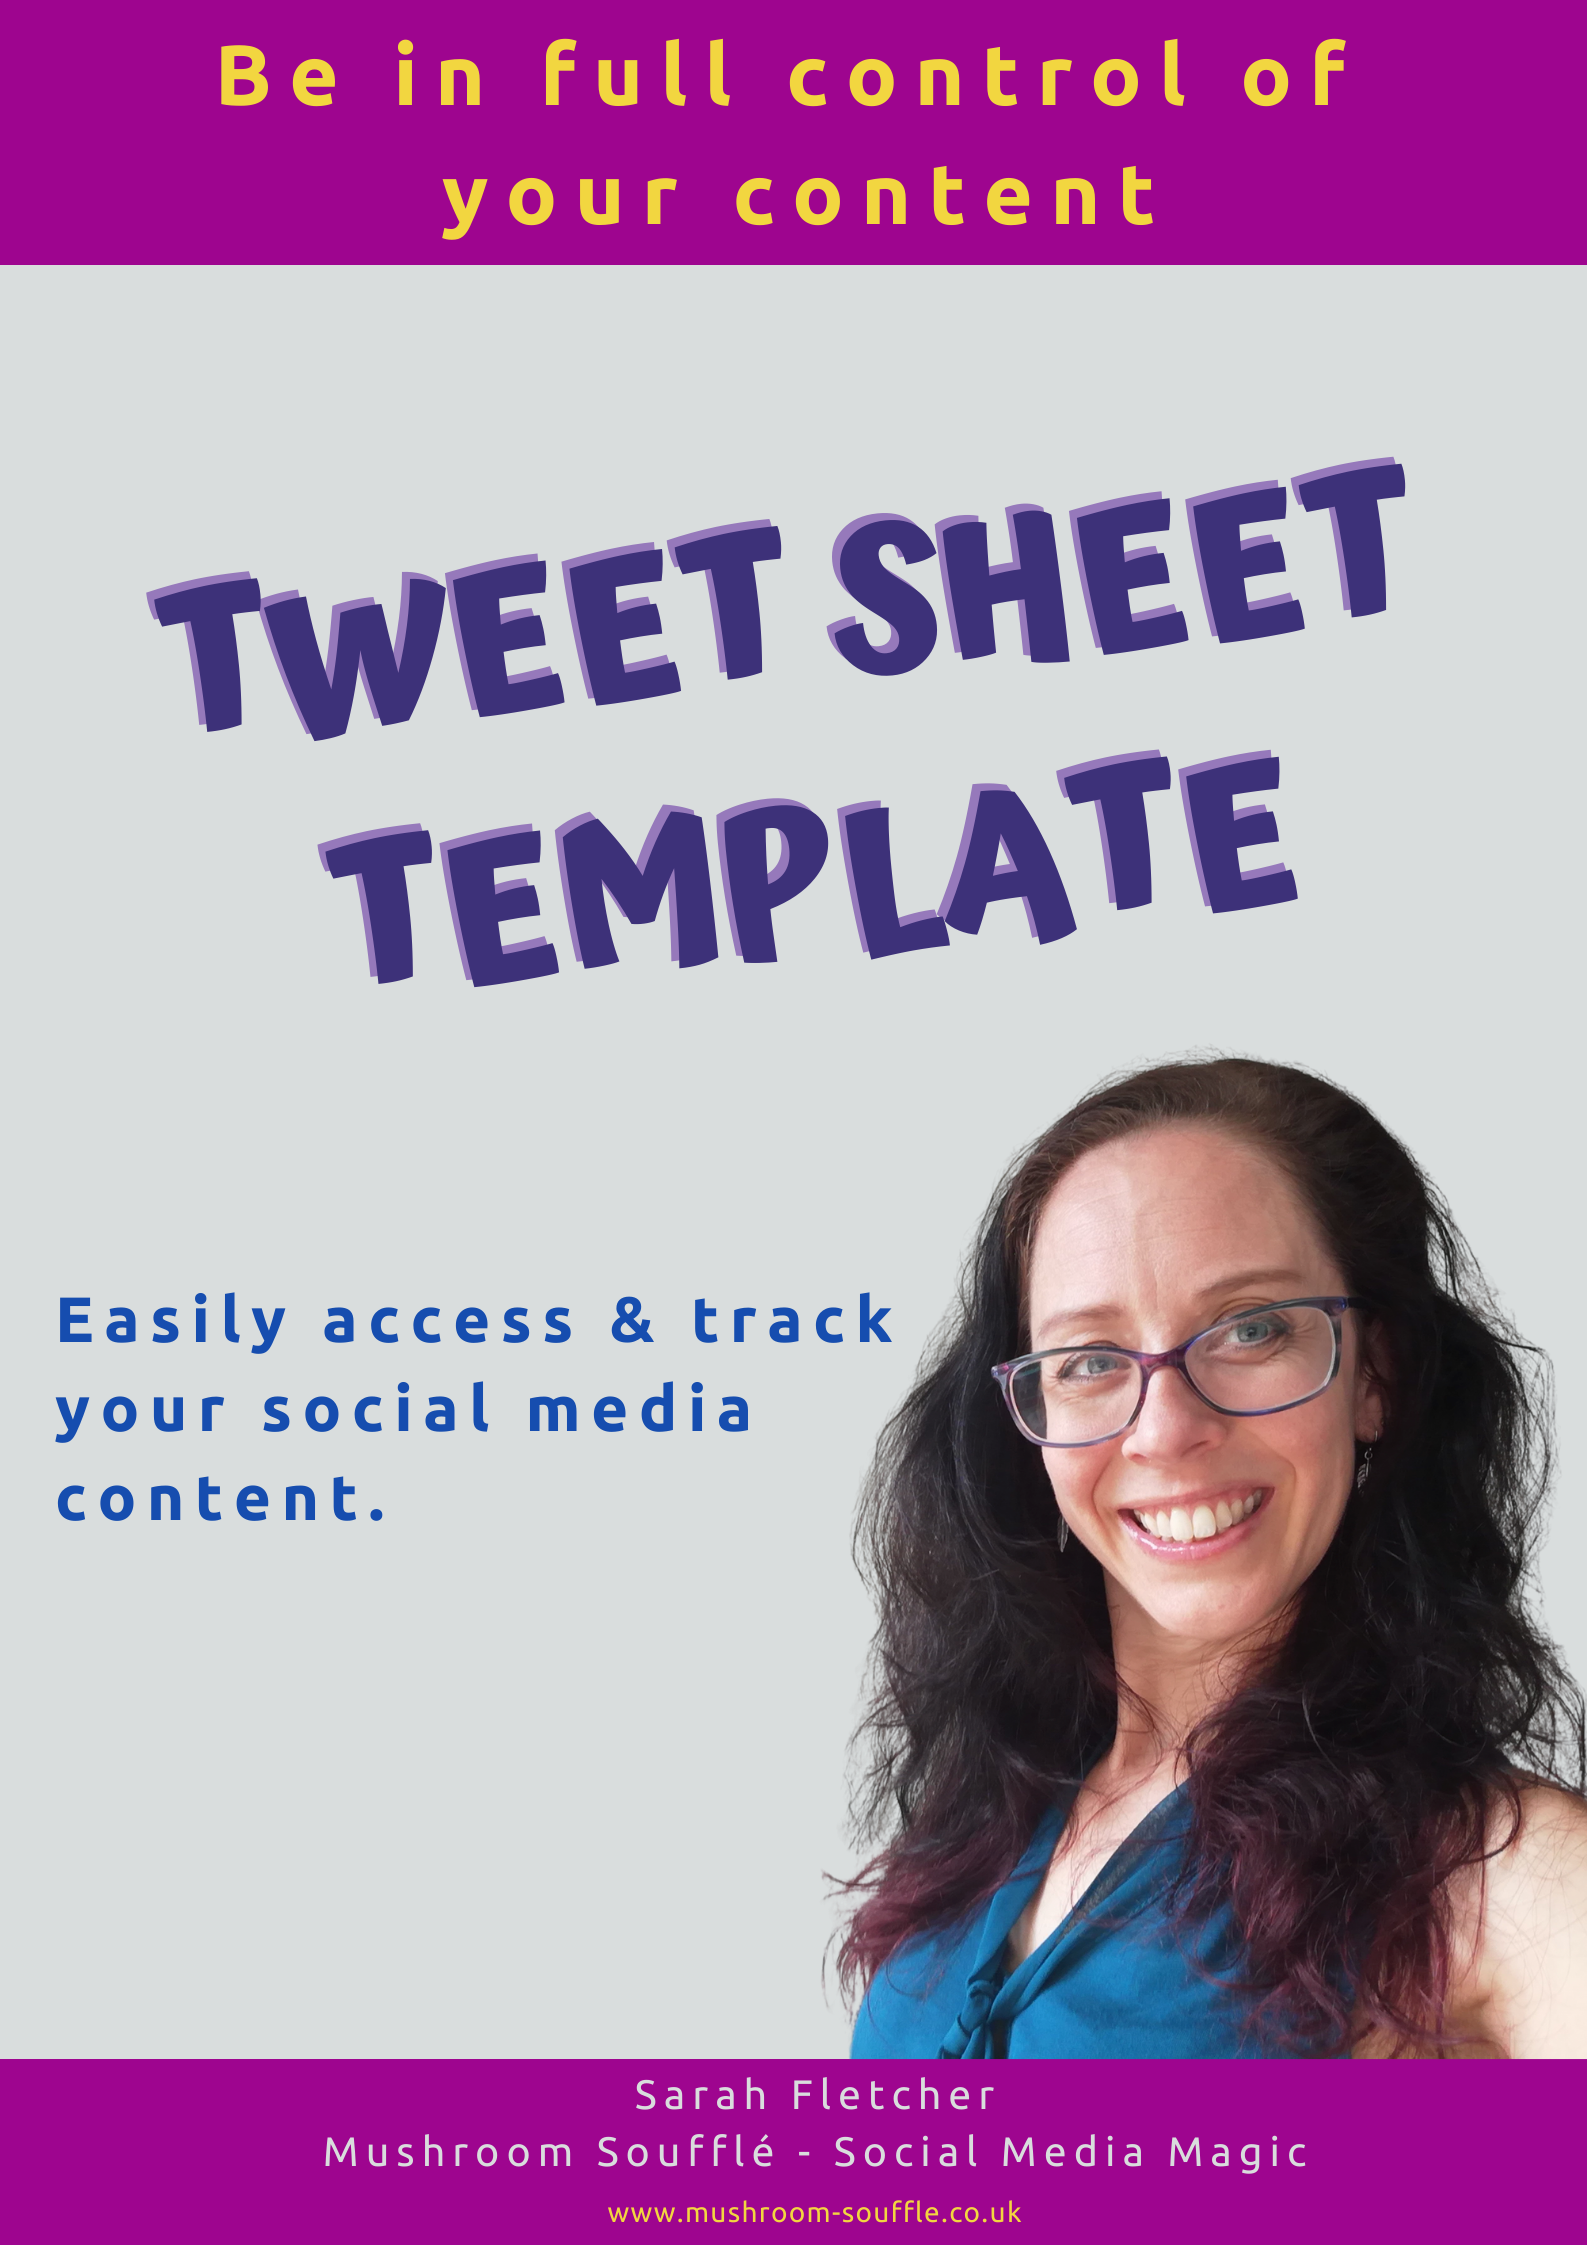 The Tweet Sheet Template